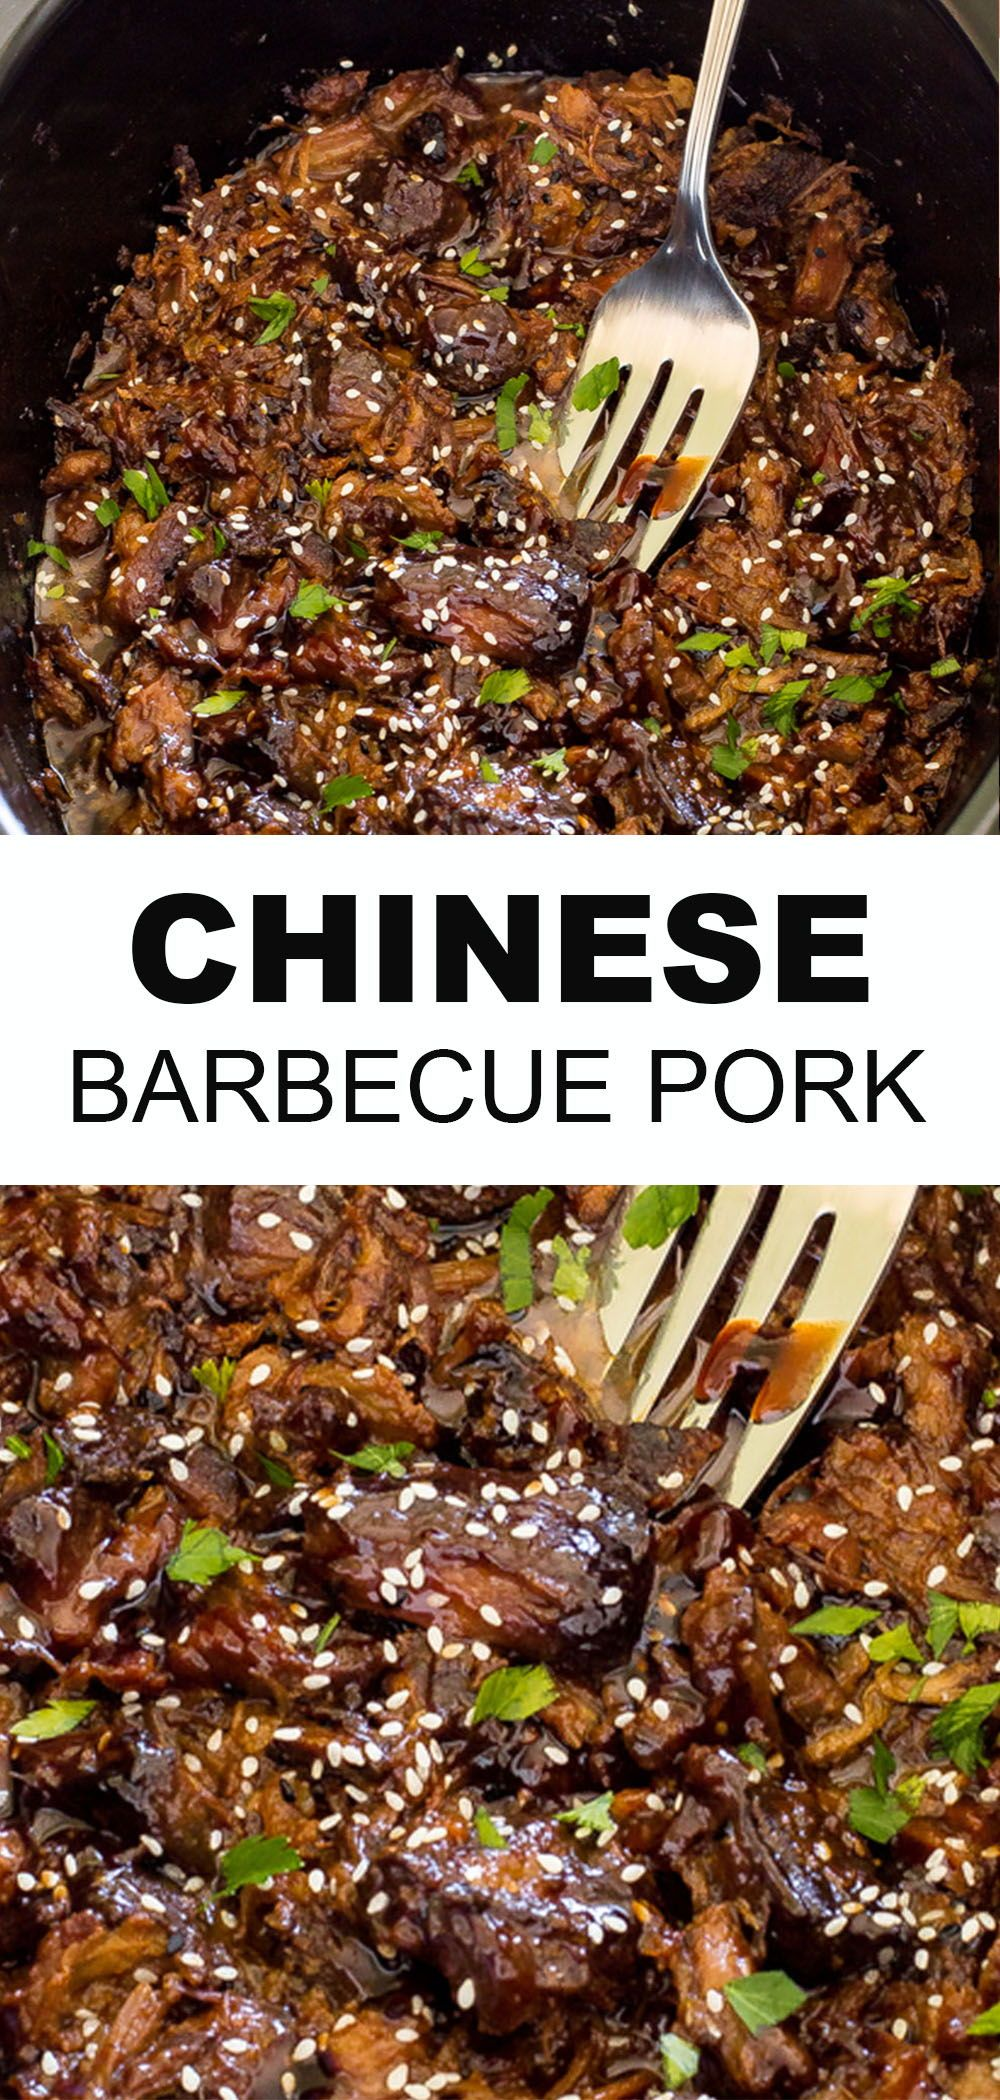 Slow Cooker Chinese Barbecue Pork Chef Savvy Recipe In 2020 Vegan Recipes Easy Asian Dinner Recipes Asian Recipes